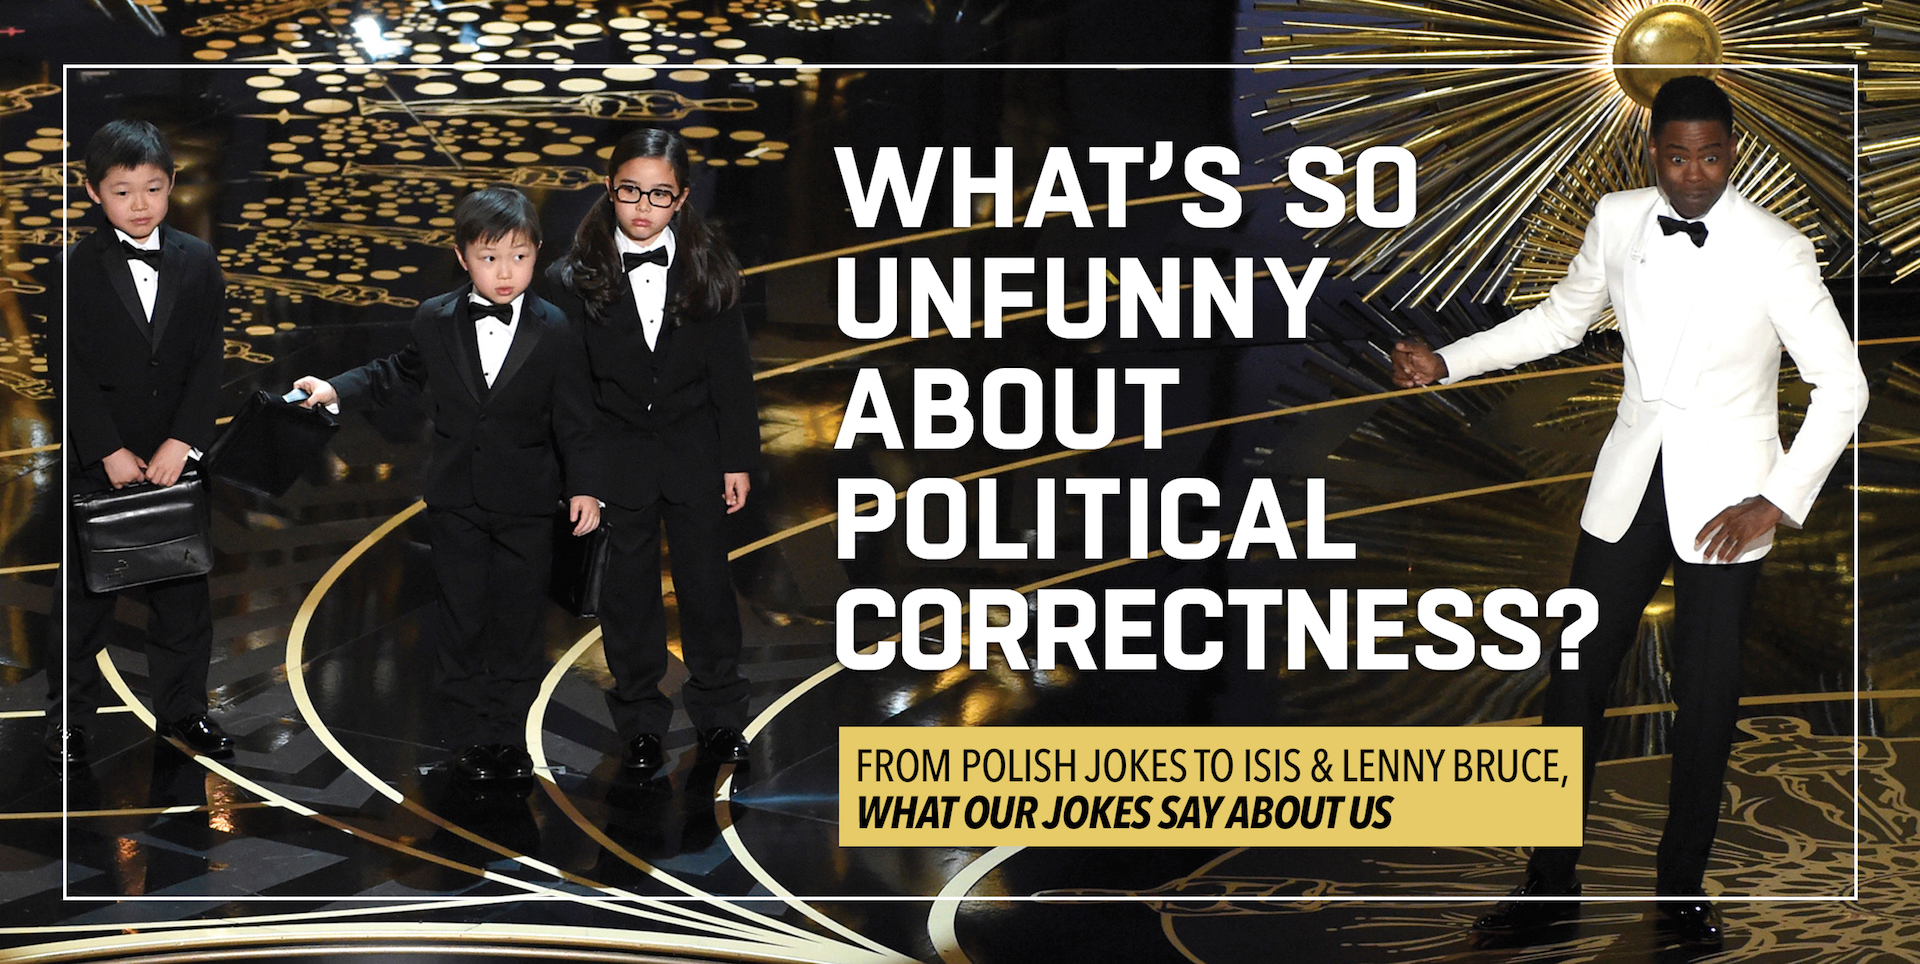 What's So Unfunny About Political Correctness?